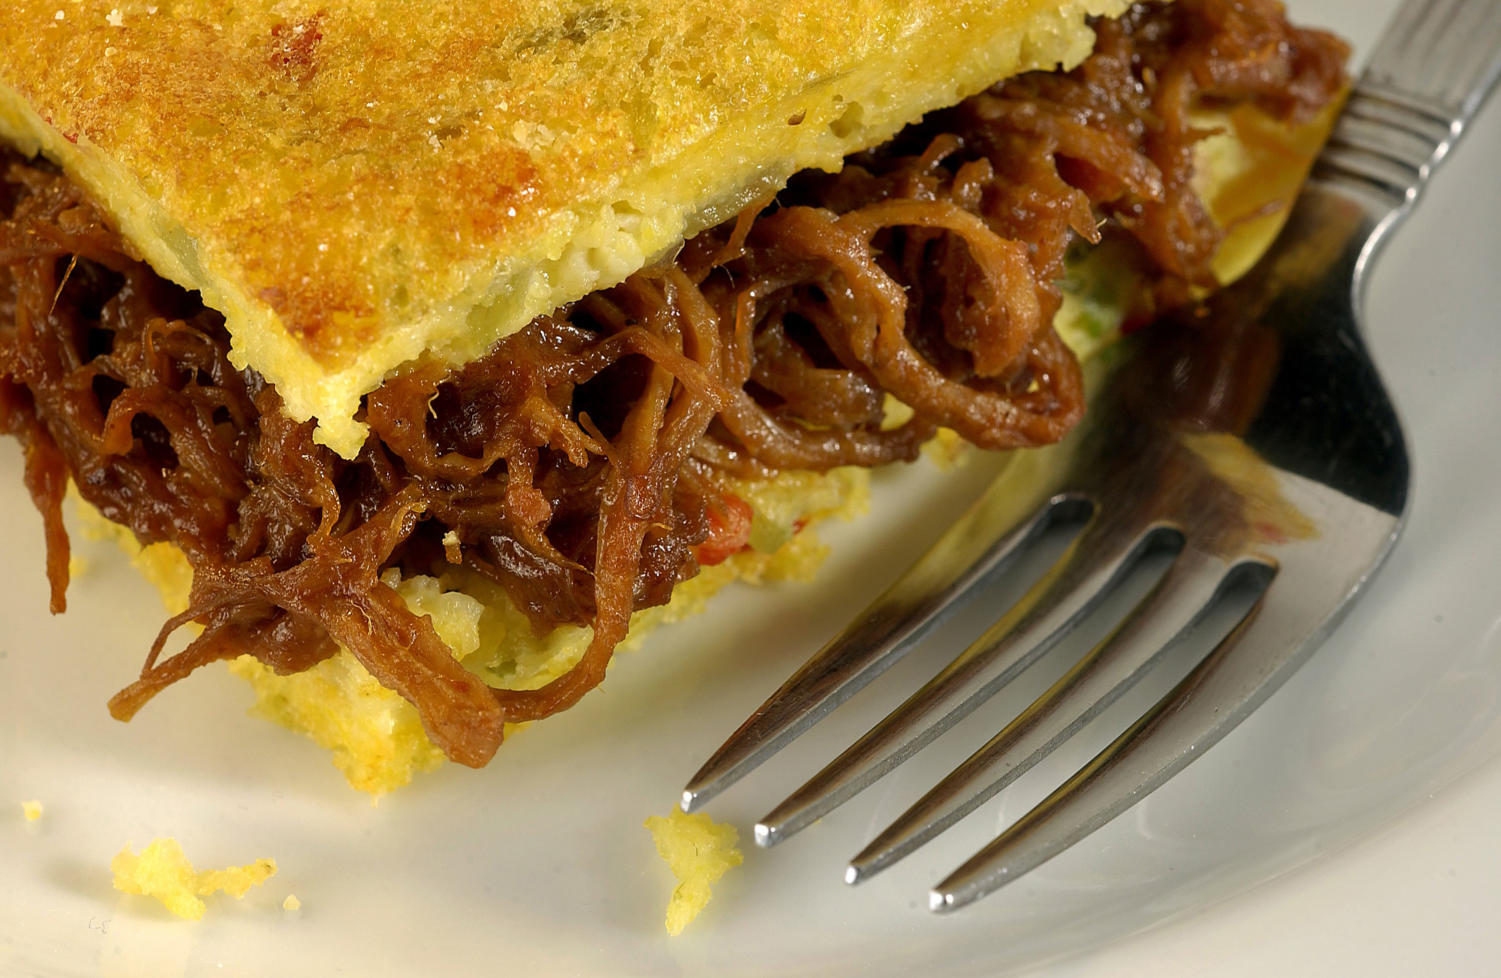 Barbequed pork is sandwiched between layers of corn bread that is bolstered with cheddar, corn kernels and jalapeno. (James F. Quinn/Chicago Tribune/TNS)